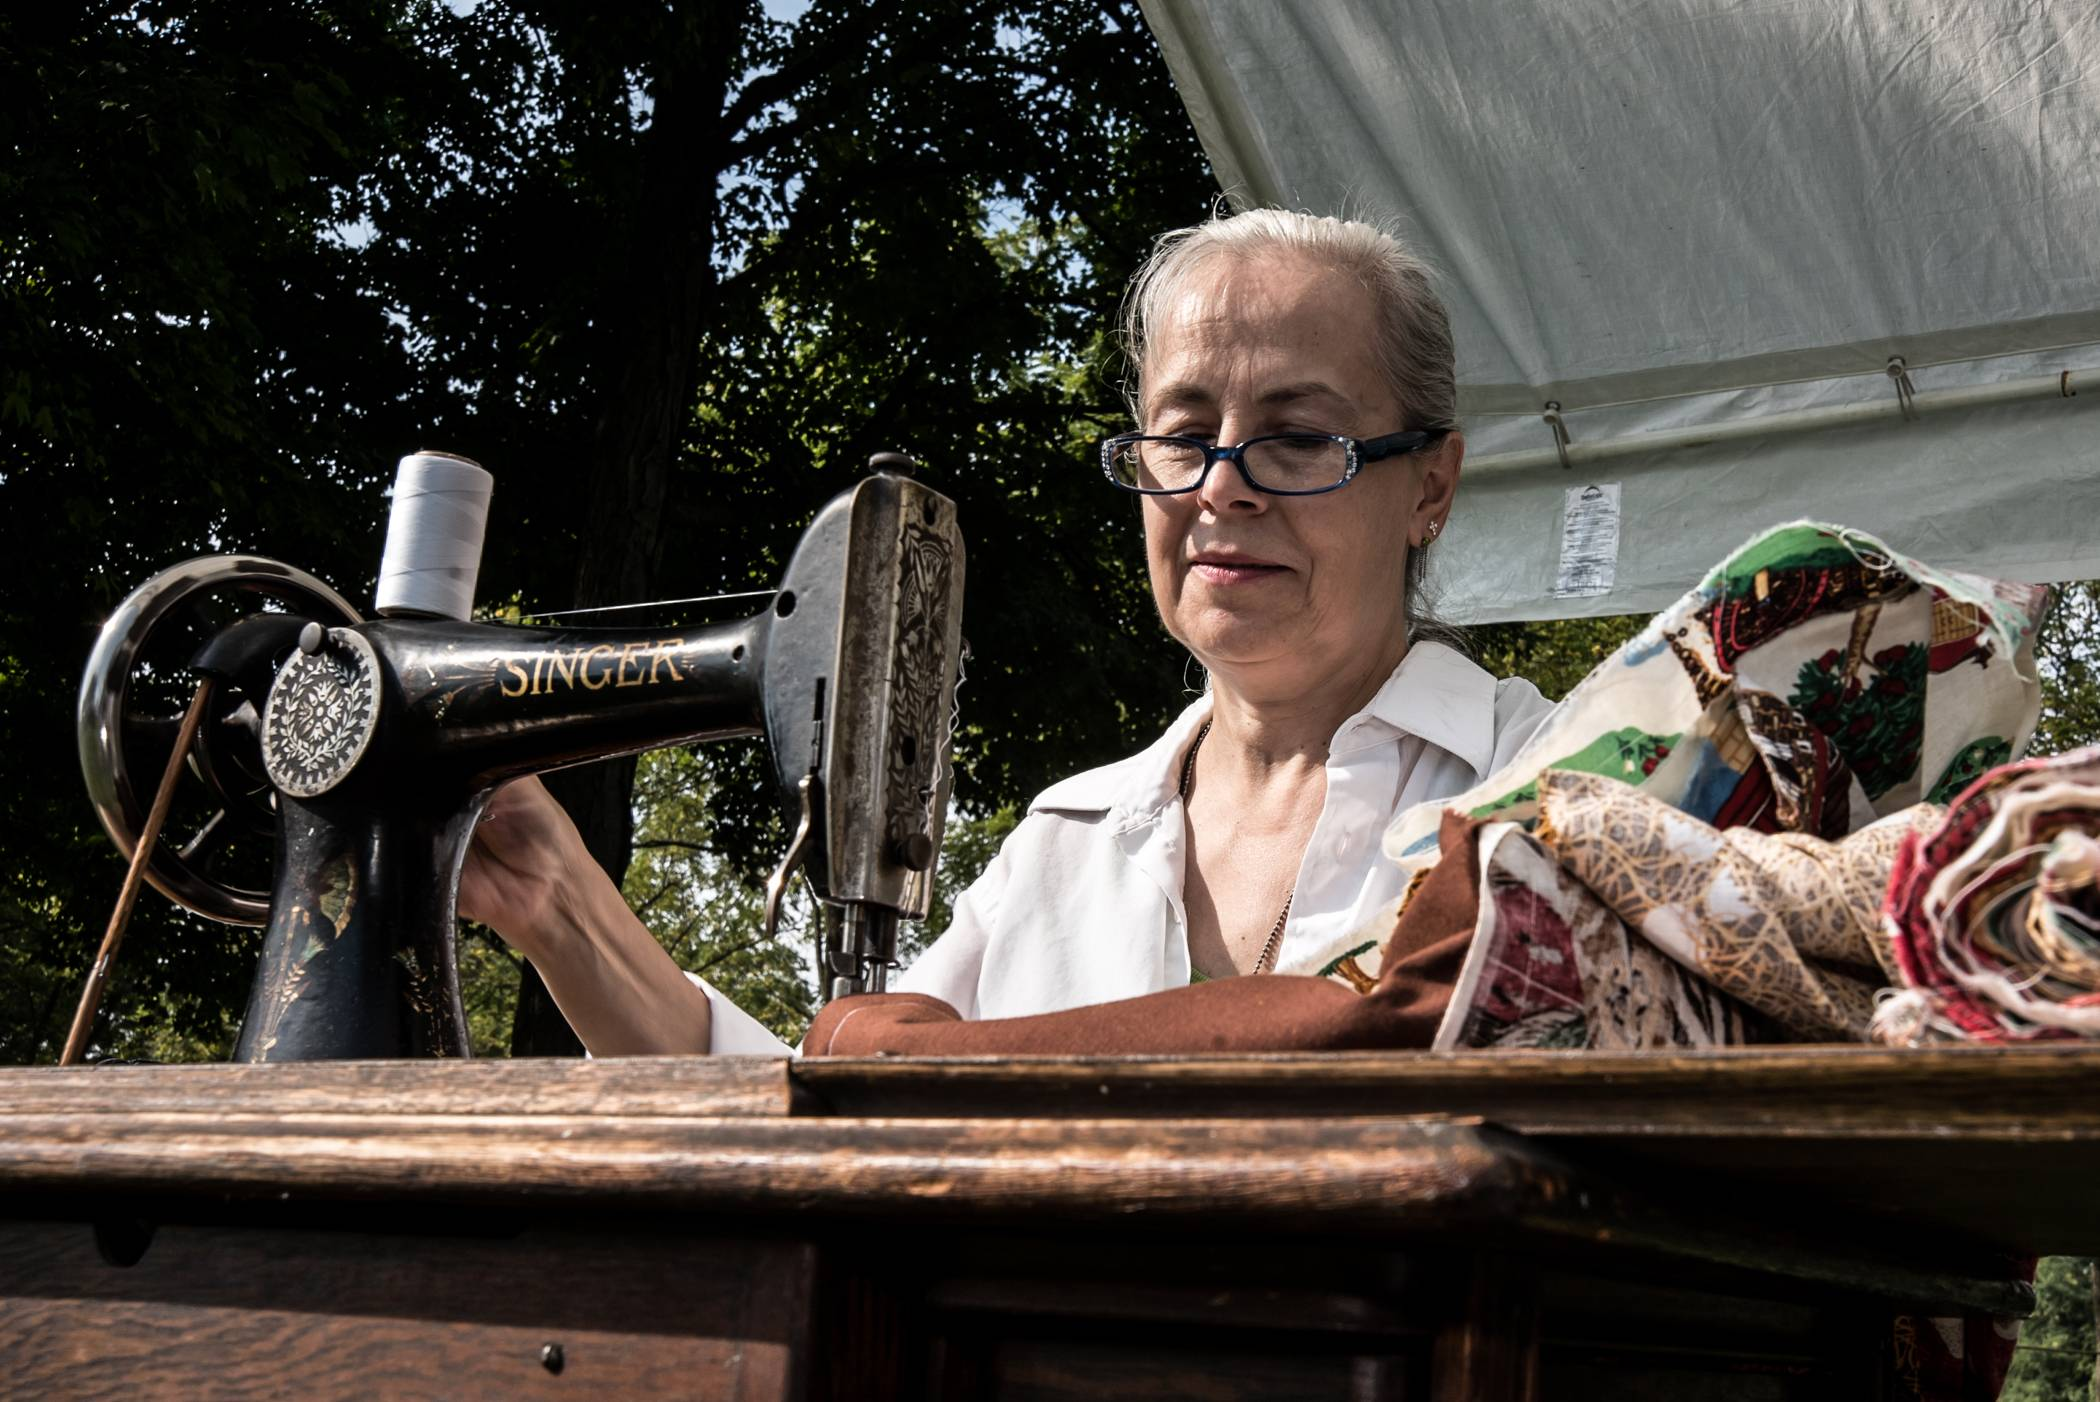 A 1905 Singer sewing machine works just fine Sunday for Trudi Handzel of Palatine during the 24th annual Farm Heritage Festival at the Lakewood Forest Preserve near Wauconda.